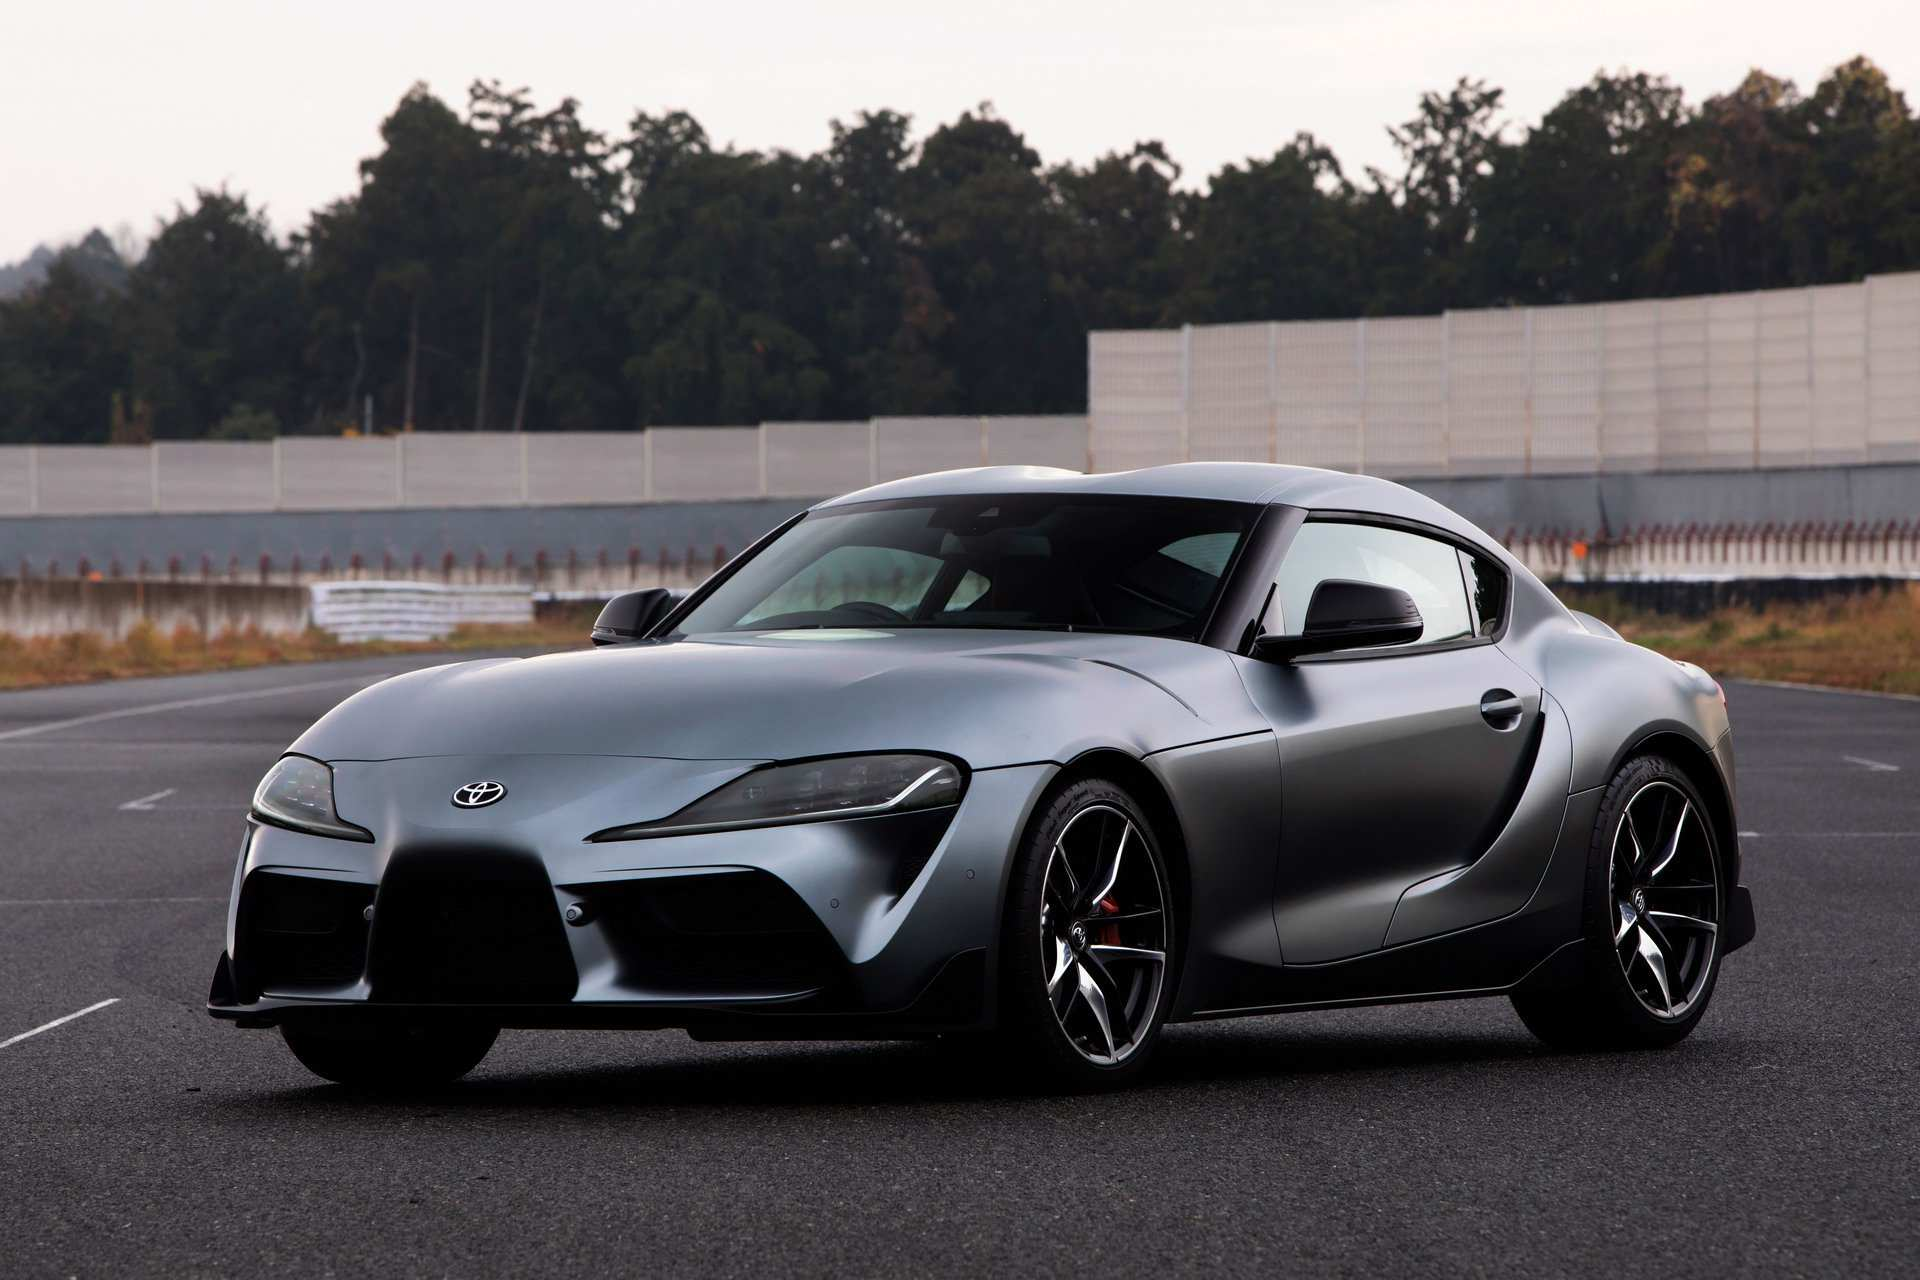 66 Concept of Toyota Gr Supra 2020 Performance with Toyota Gr Supra 2020